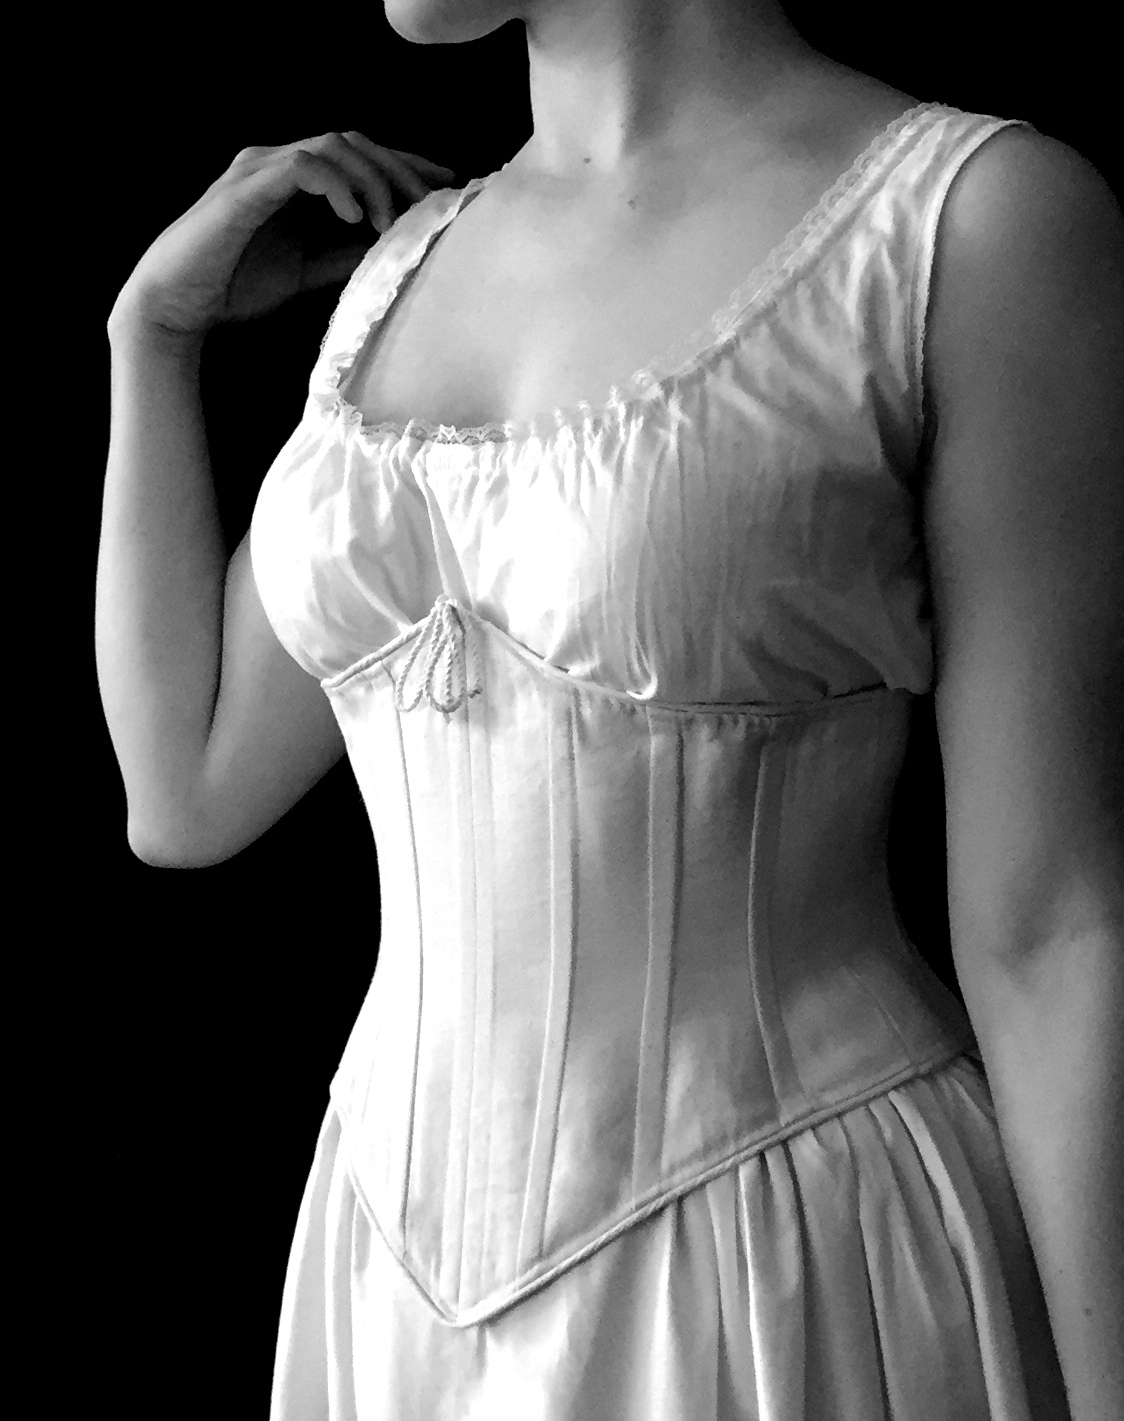 Period Corsets Lil front-001.JPG